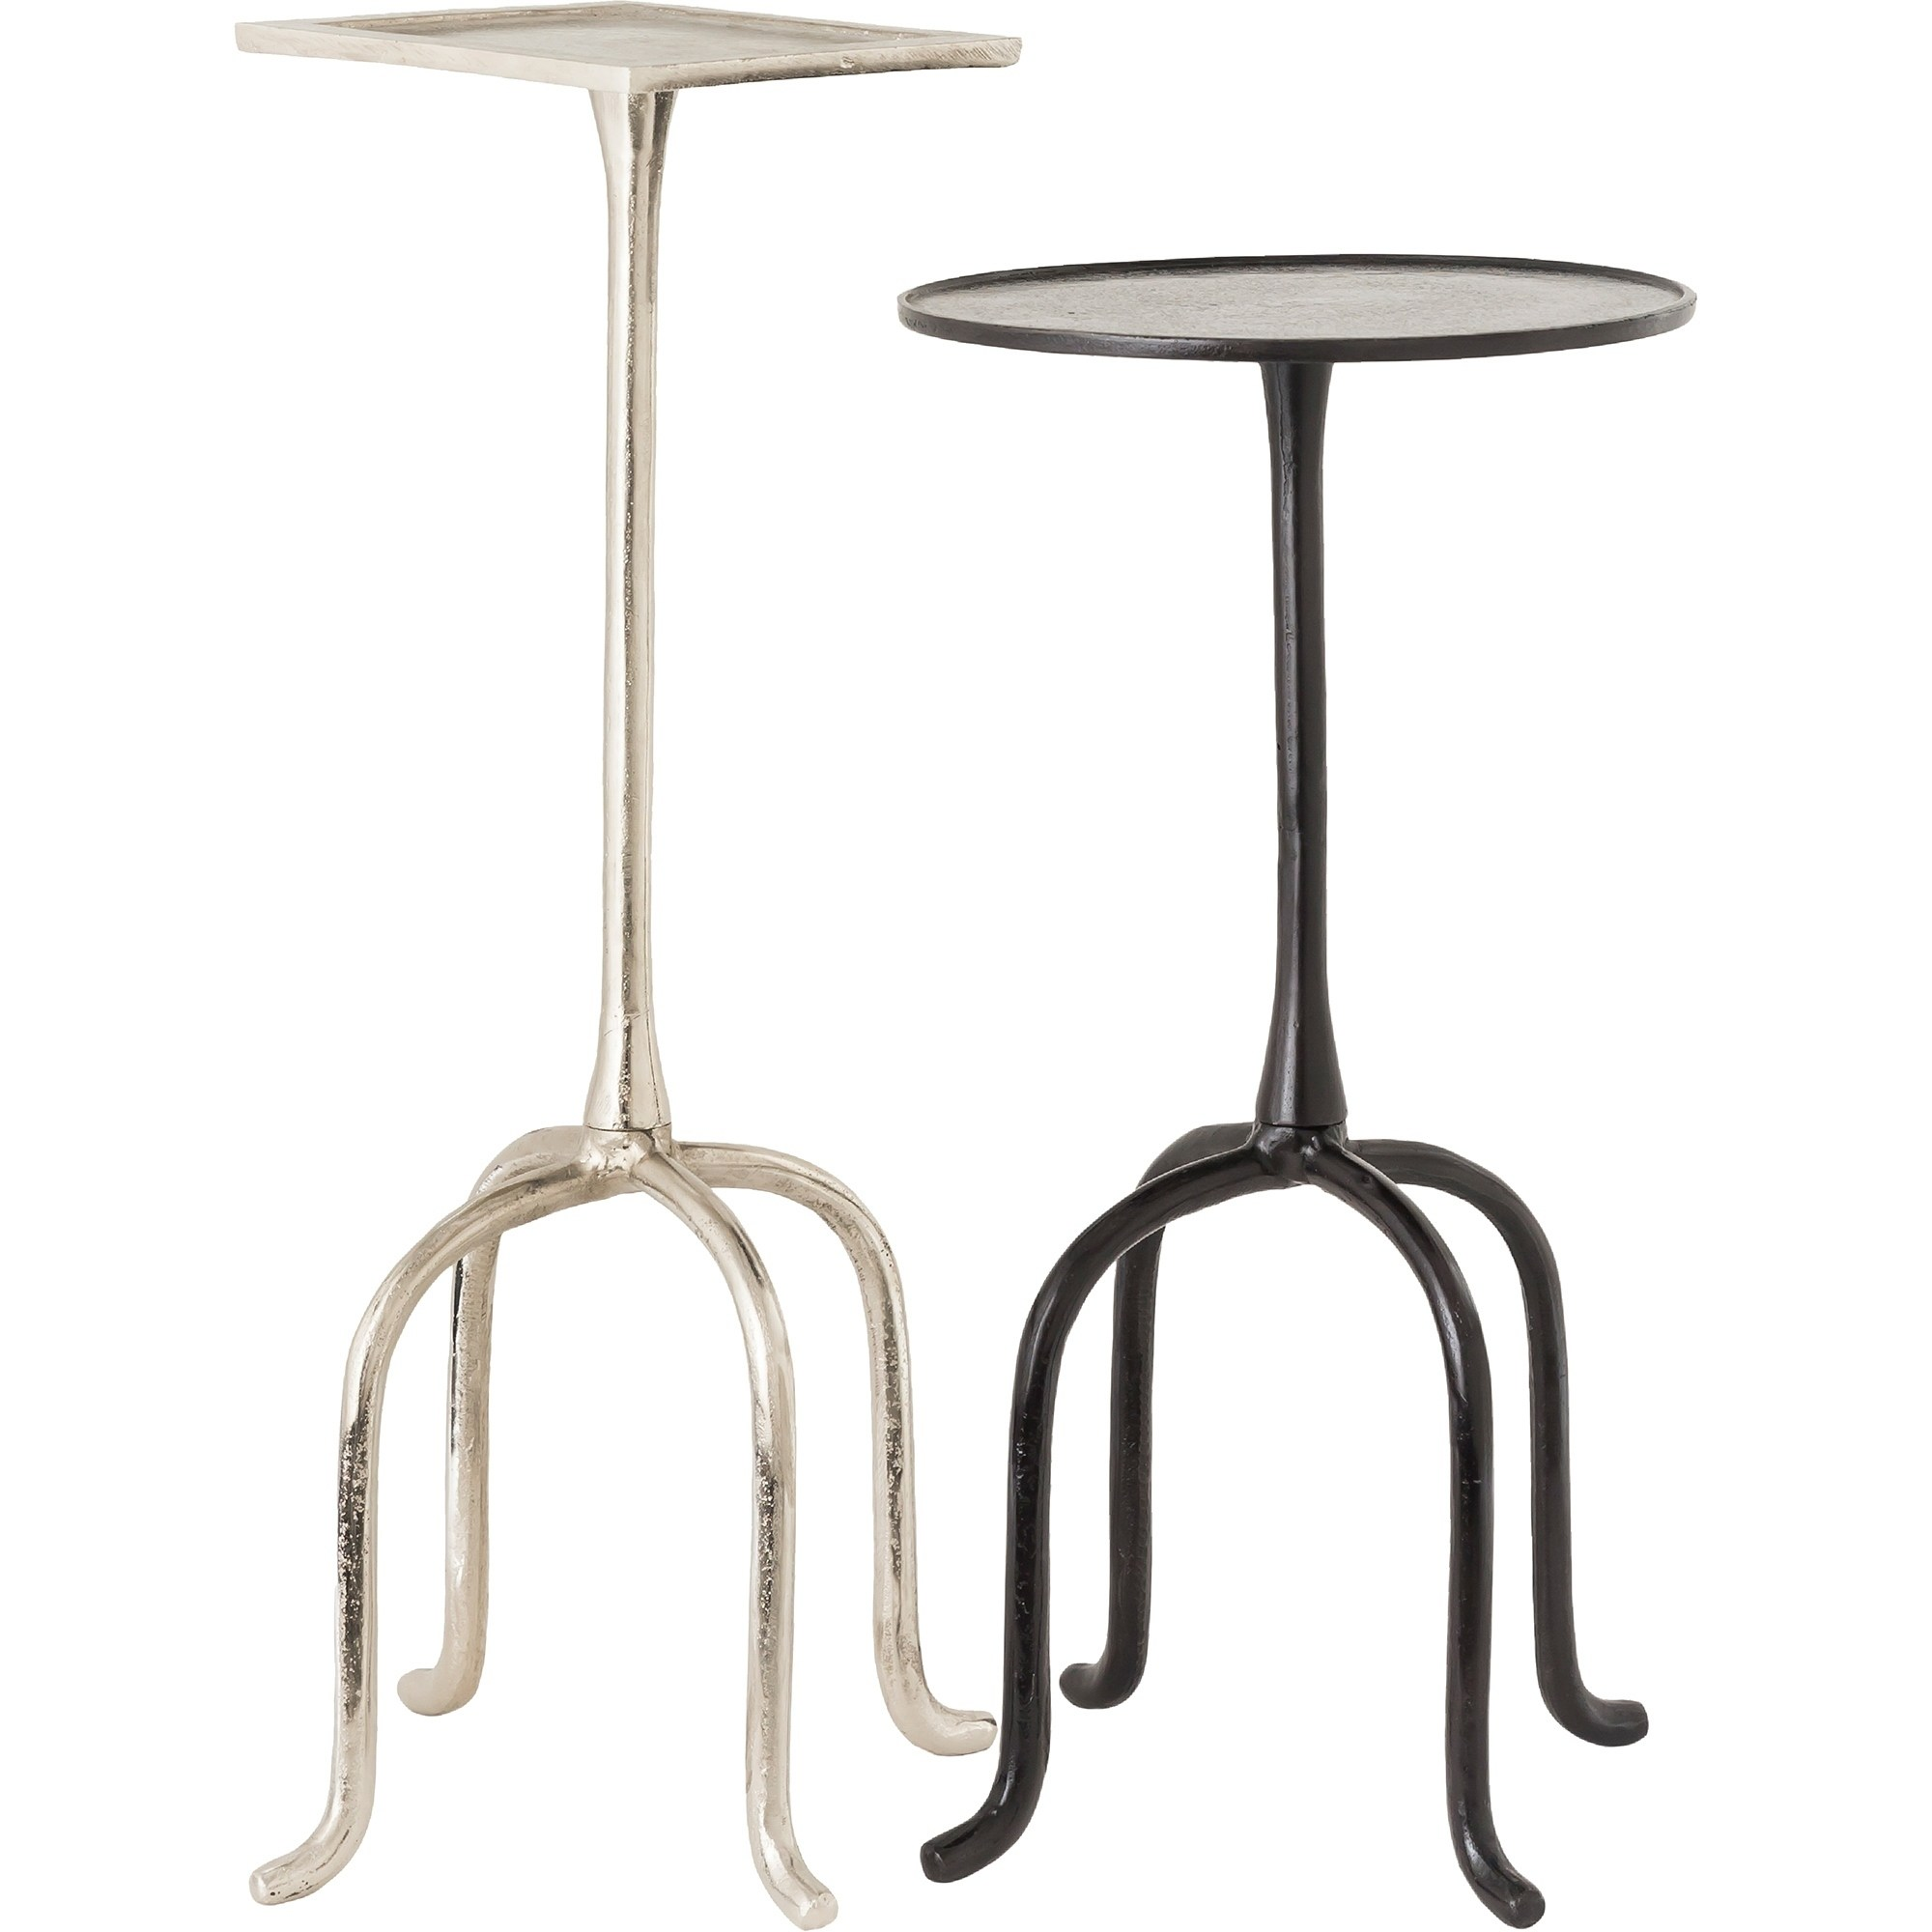 renwil darica aluminum nickel and bronze accent tables set vanora table free shipping today half circle coffee royal blue small balcony furniture sets piece patio living room